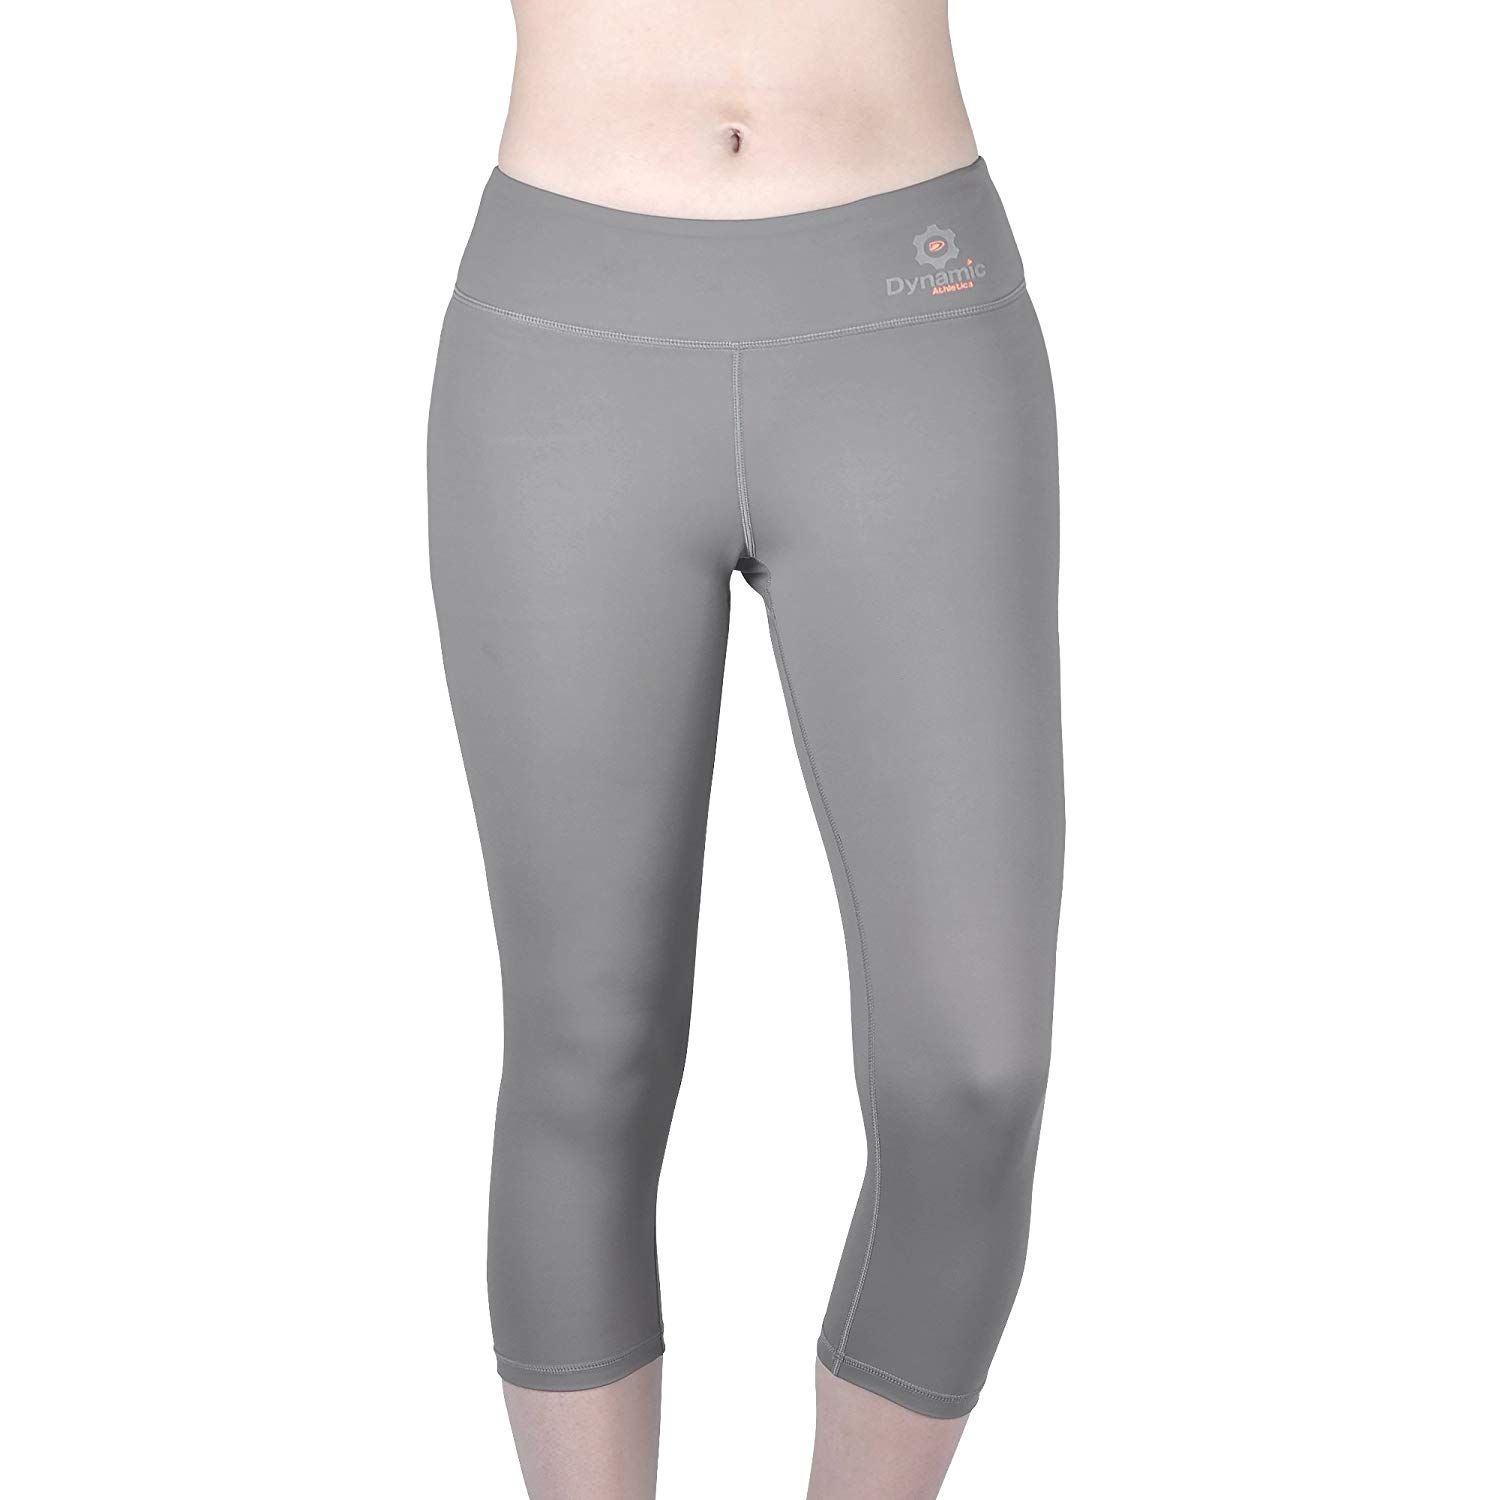 b444b02e86 Get Quotations · Dynamic Athletica Compression Capri Leggings For Women/Slimming  Yoga Pants/Tights & Workout Clothes